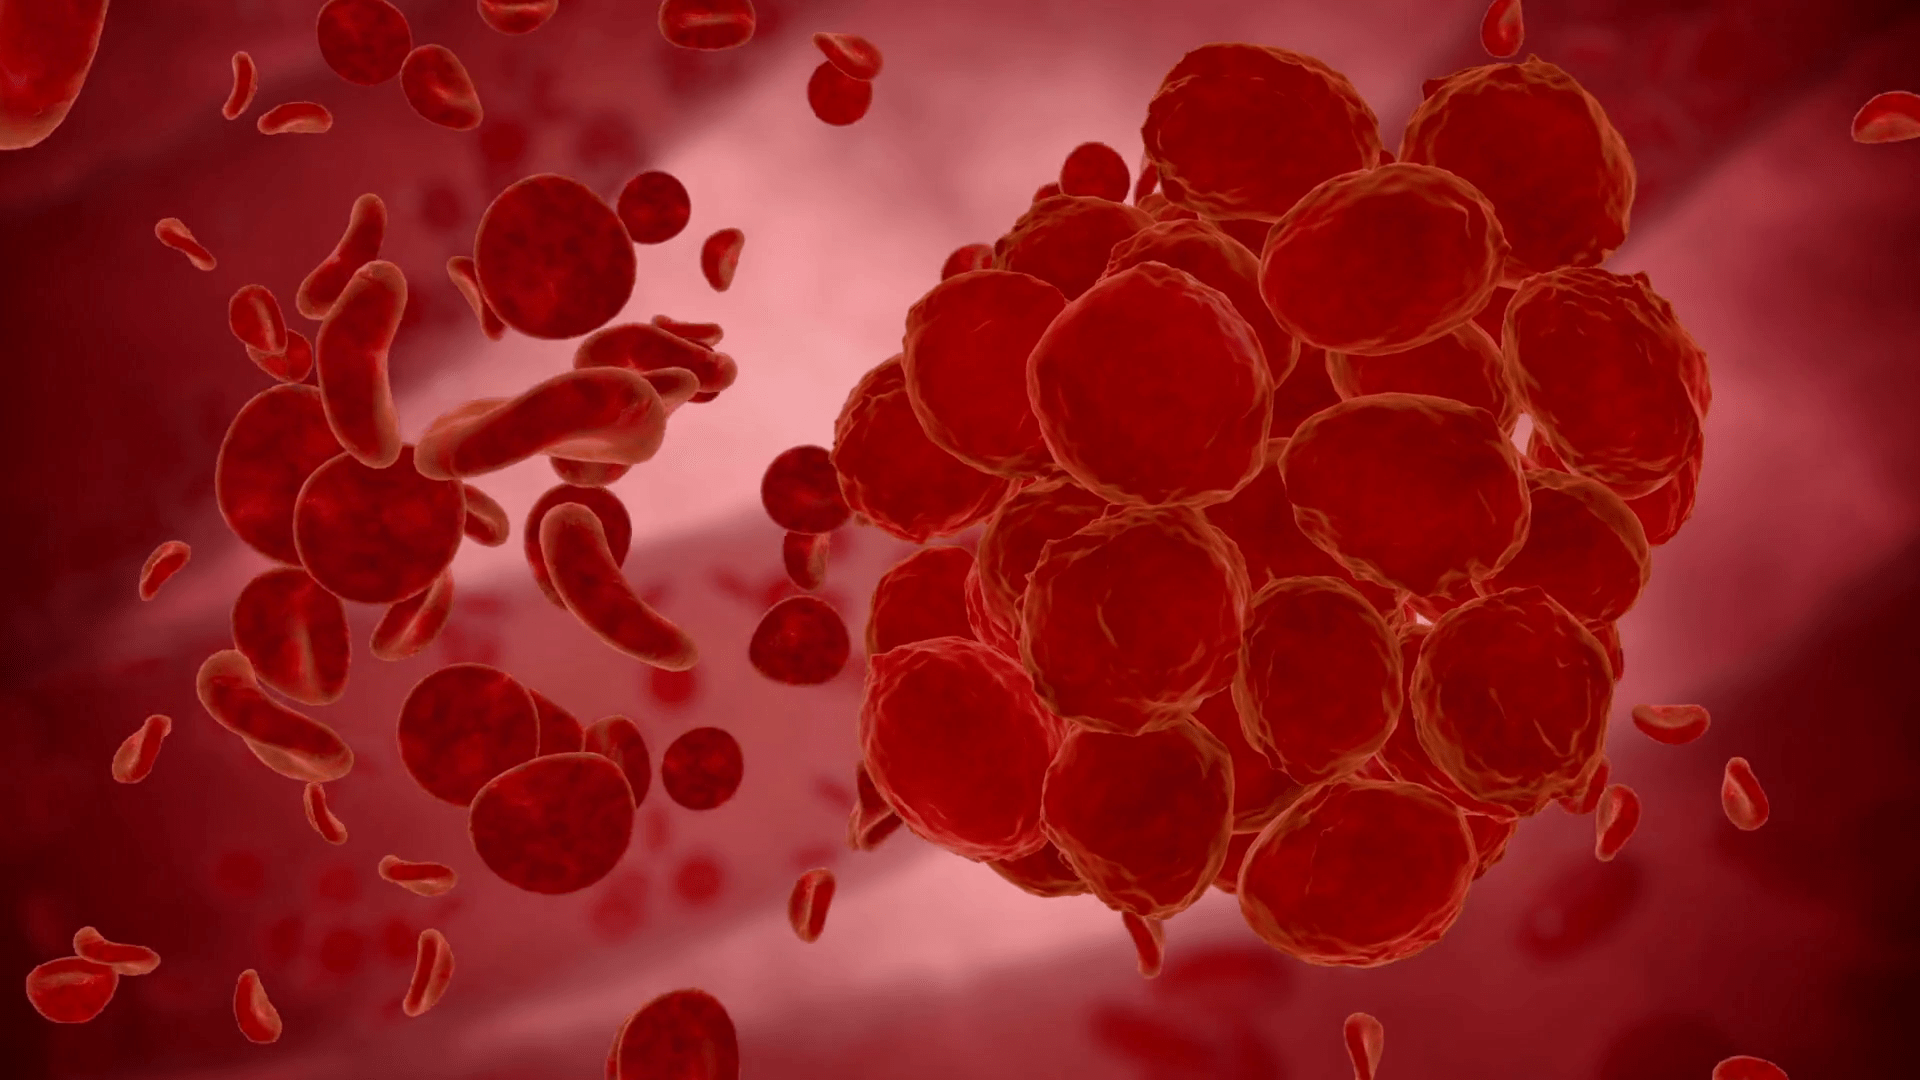 Erythrocyte Red Blood Cells Virus Bacteria Anatomy Medical Concept Siinz0G8X Thumbnail Full05 2